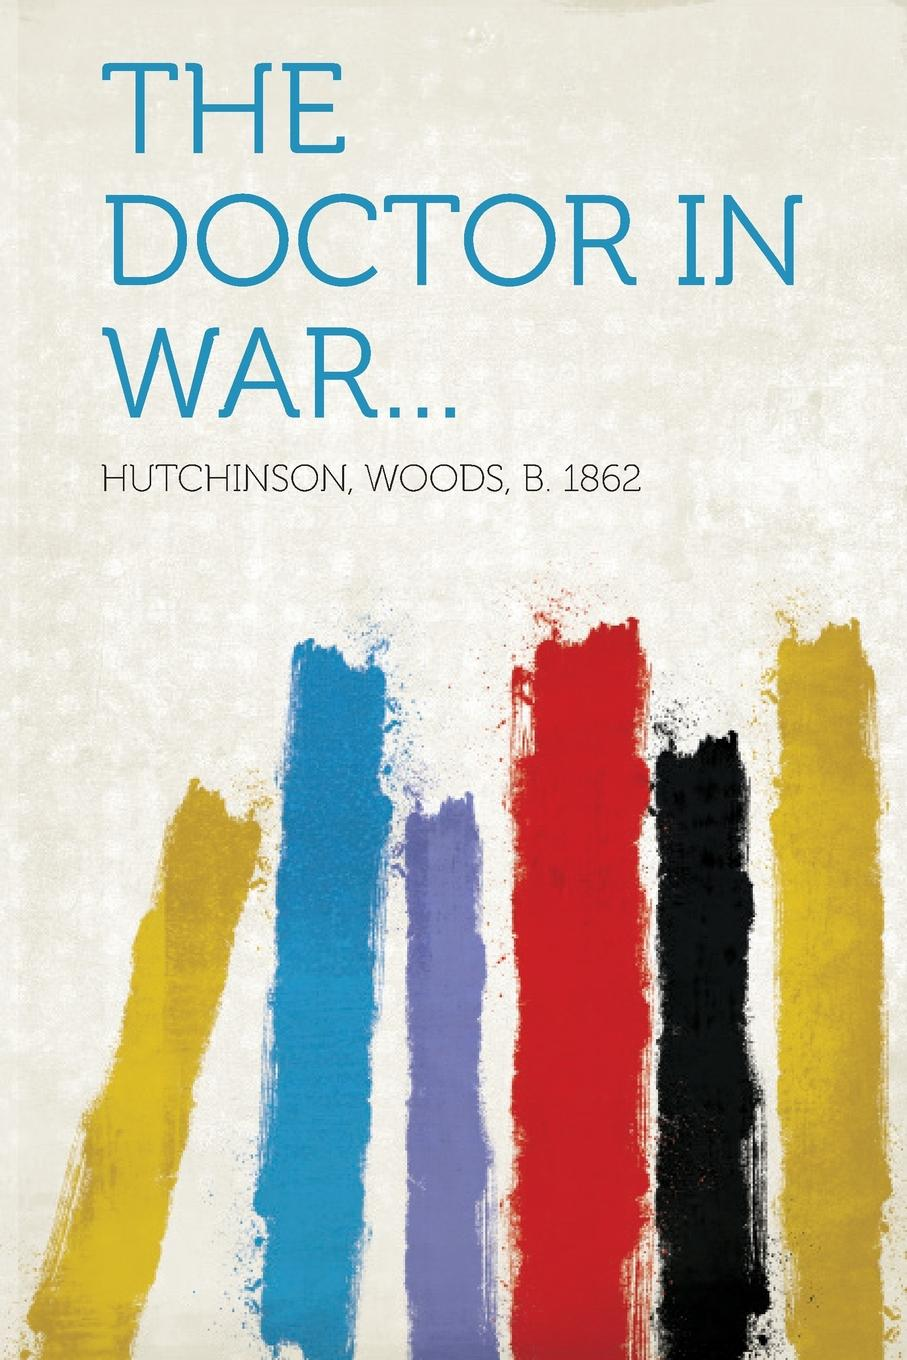 The Doctor in War...